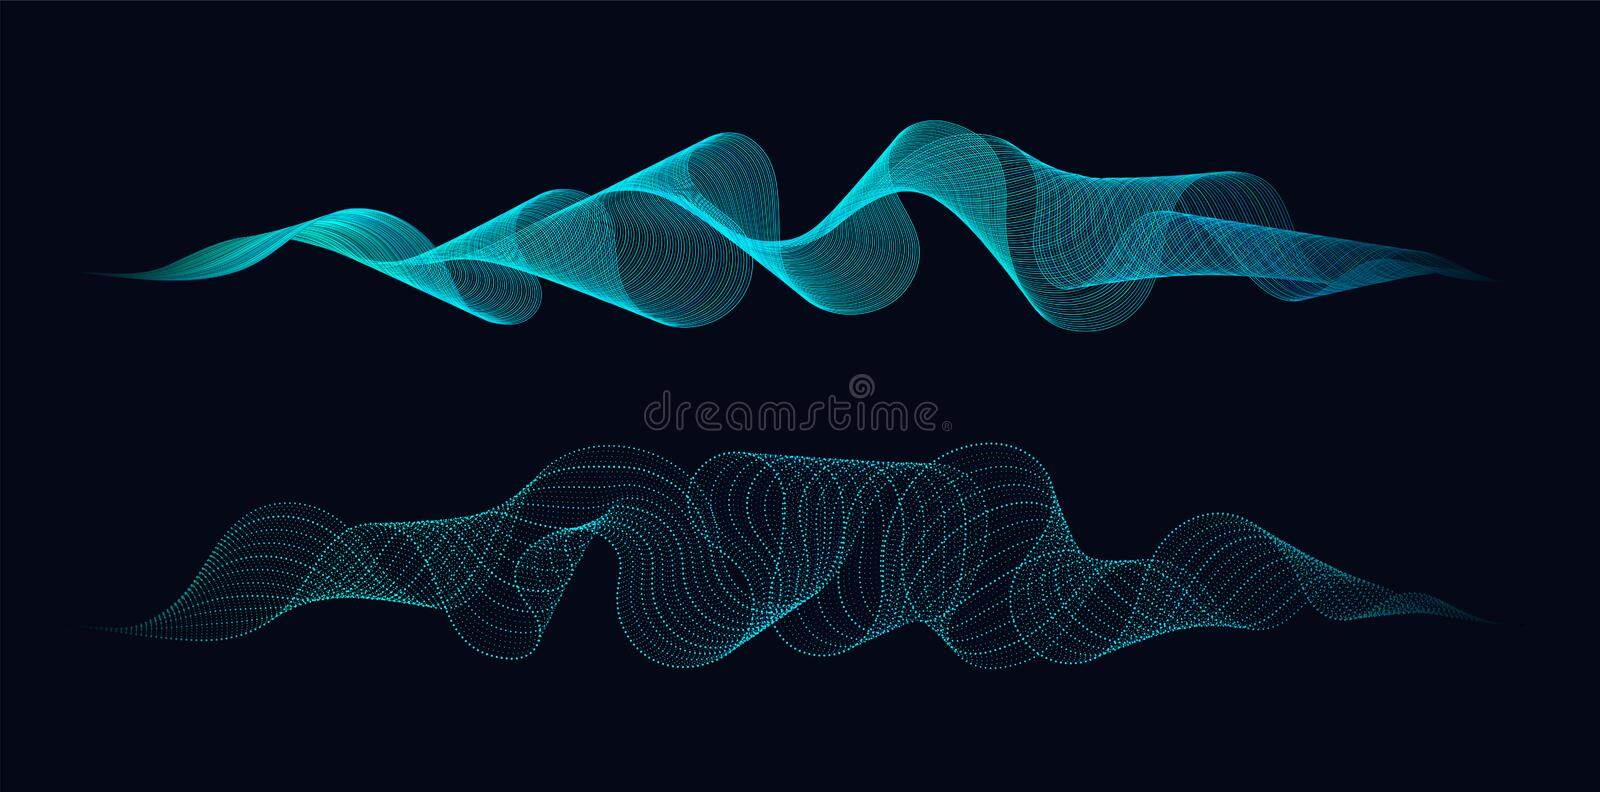 Abstract dynamic waves of lines and dots flowing on dark background. Concept of music waves science or technology AI stock illustration